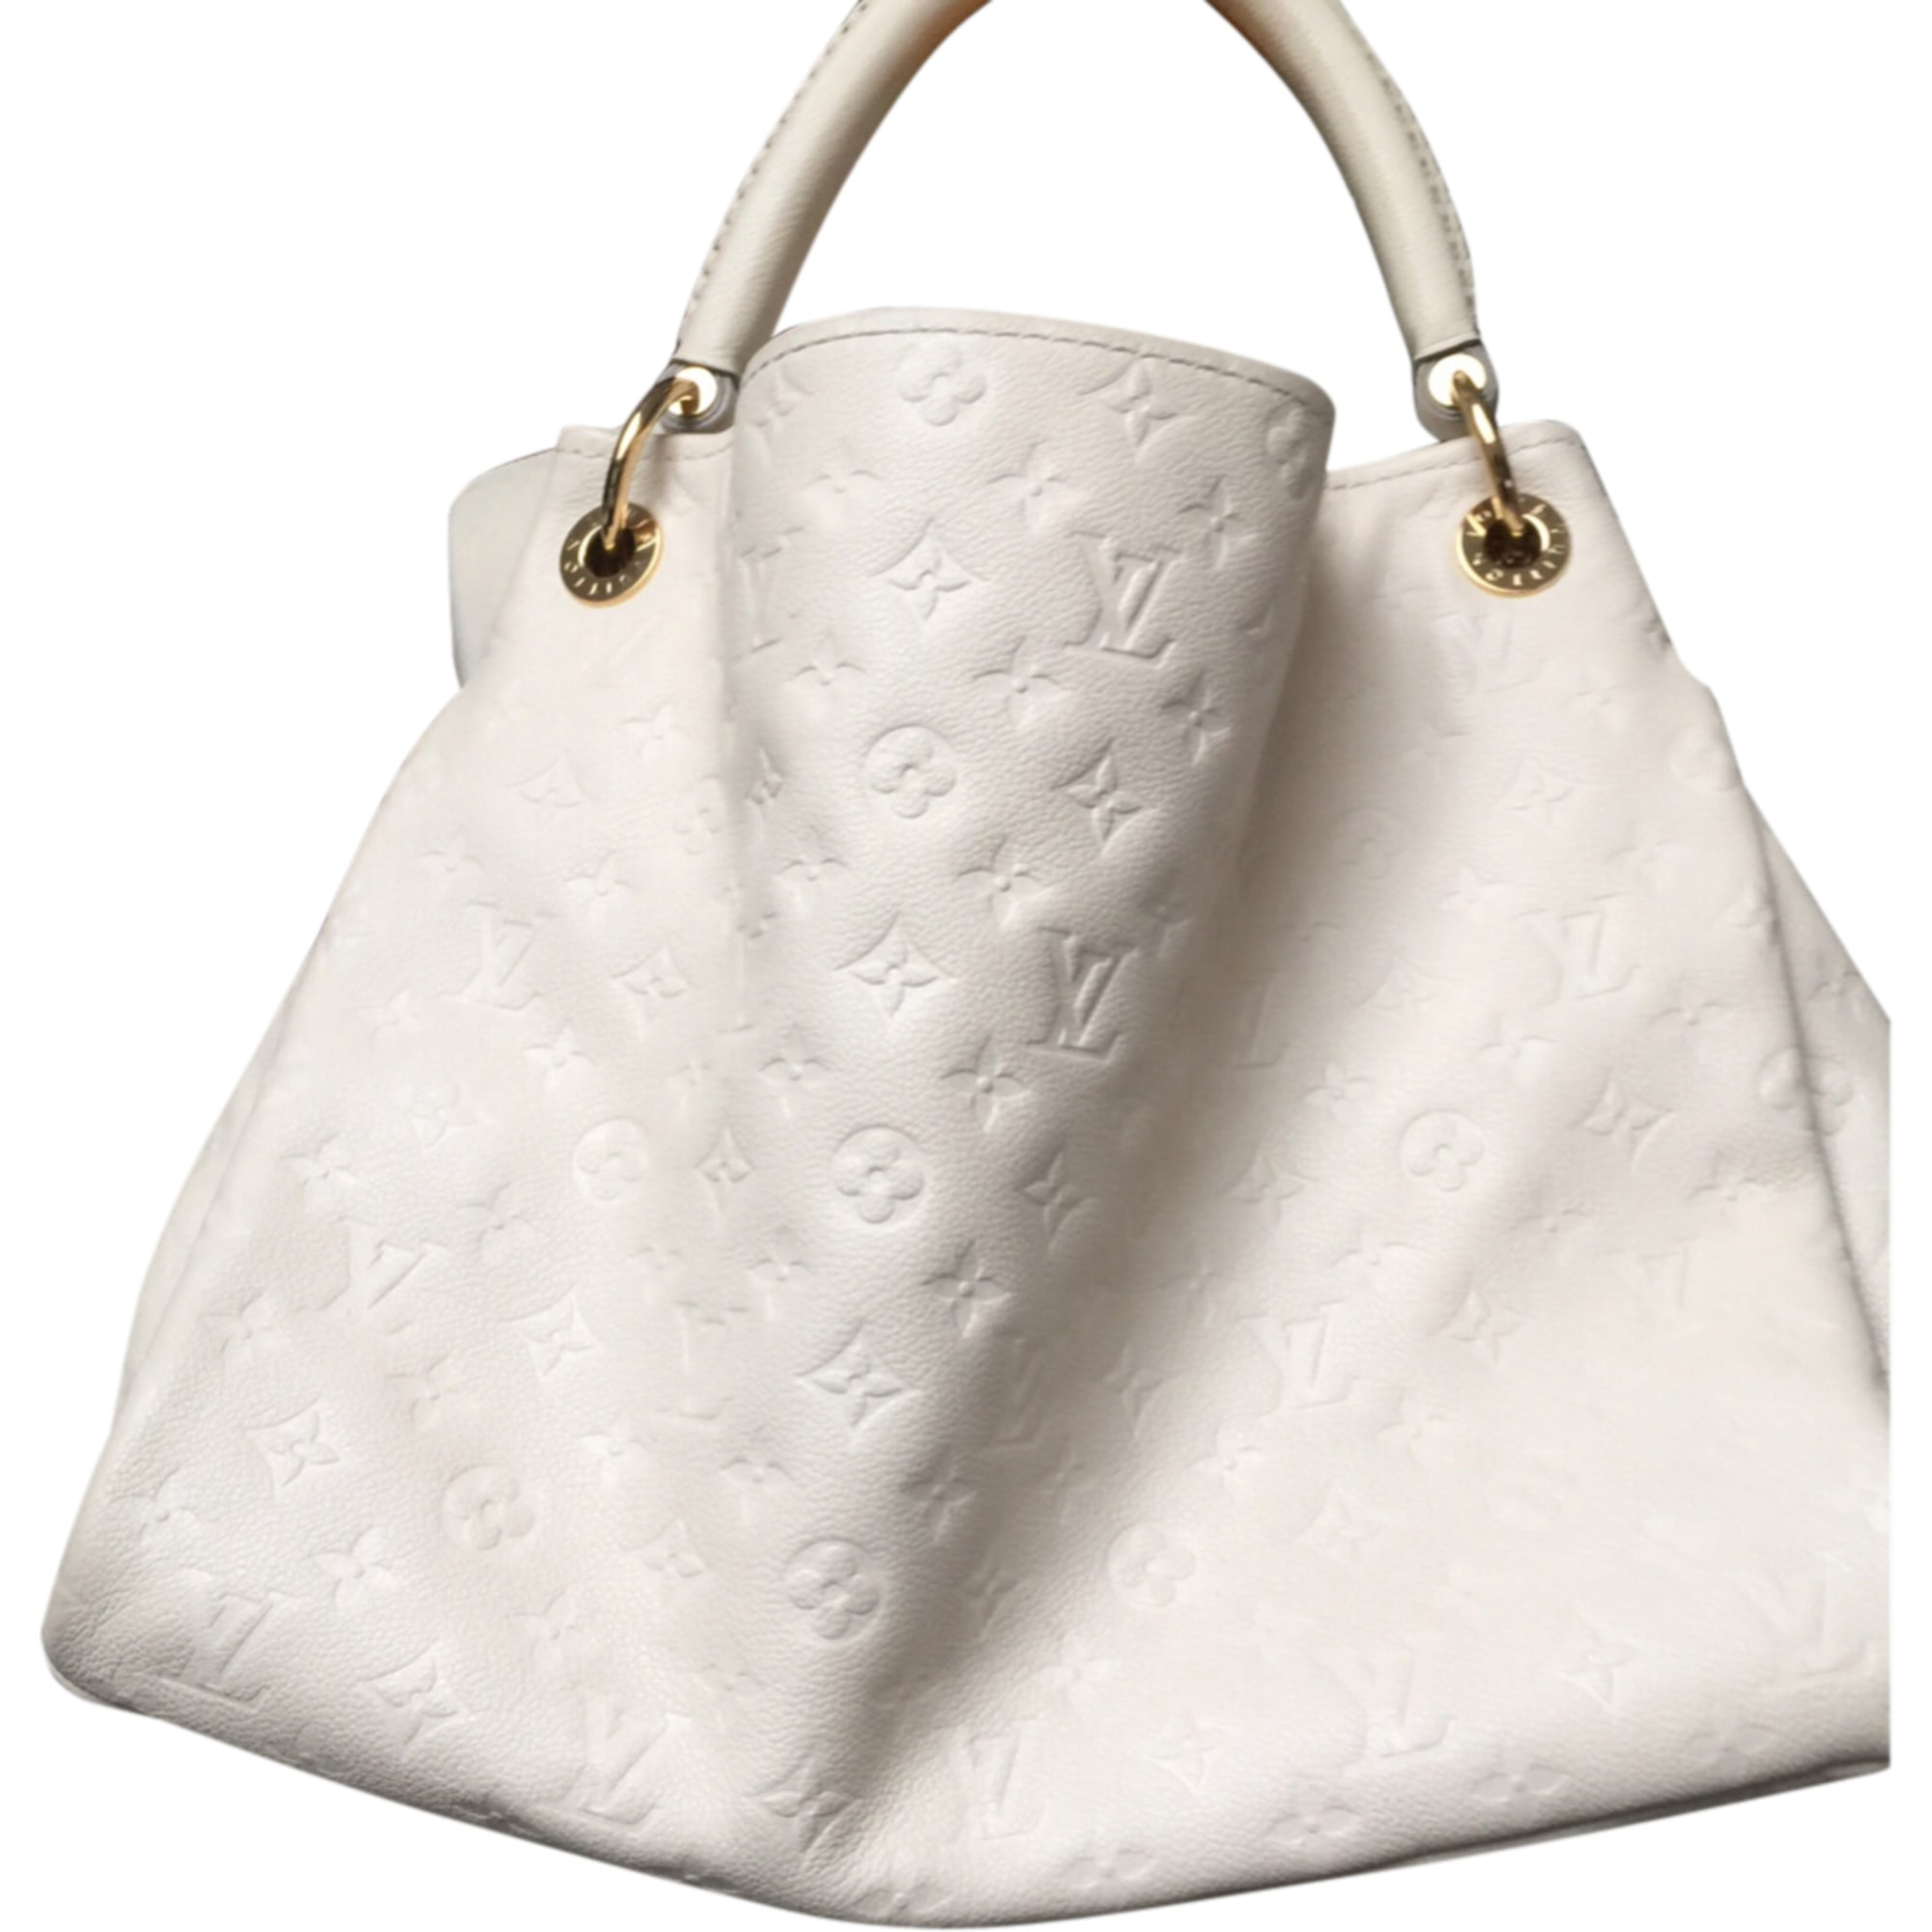 099d71168144 Sac à main en cuir LOUIS VUITTON blanc vendu par Elvira 27 - 7491427